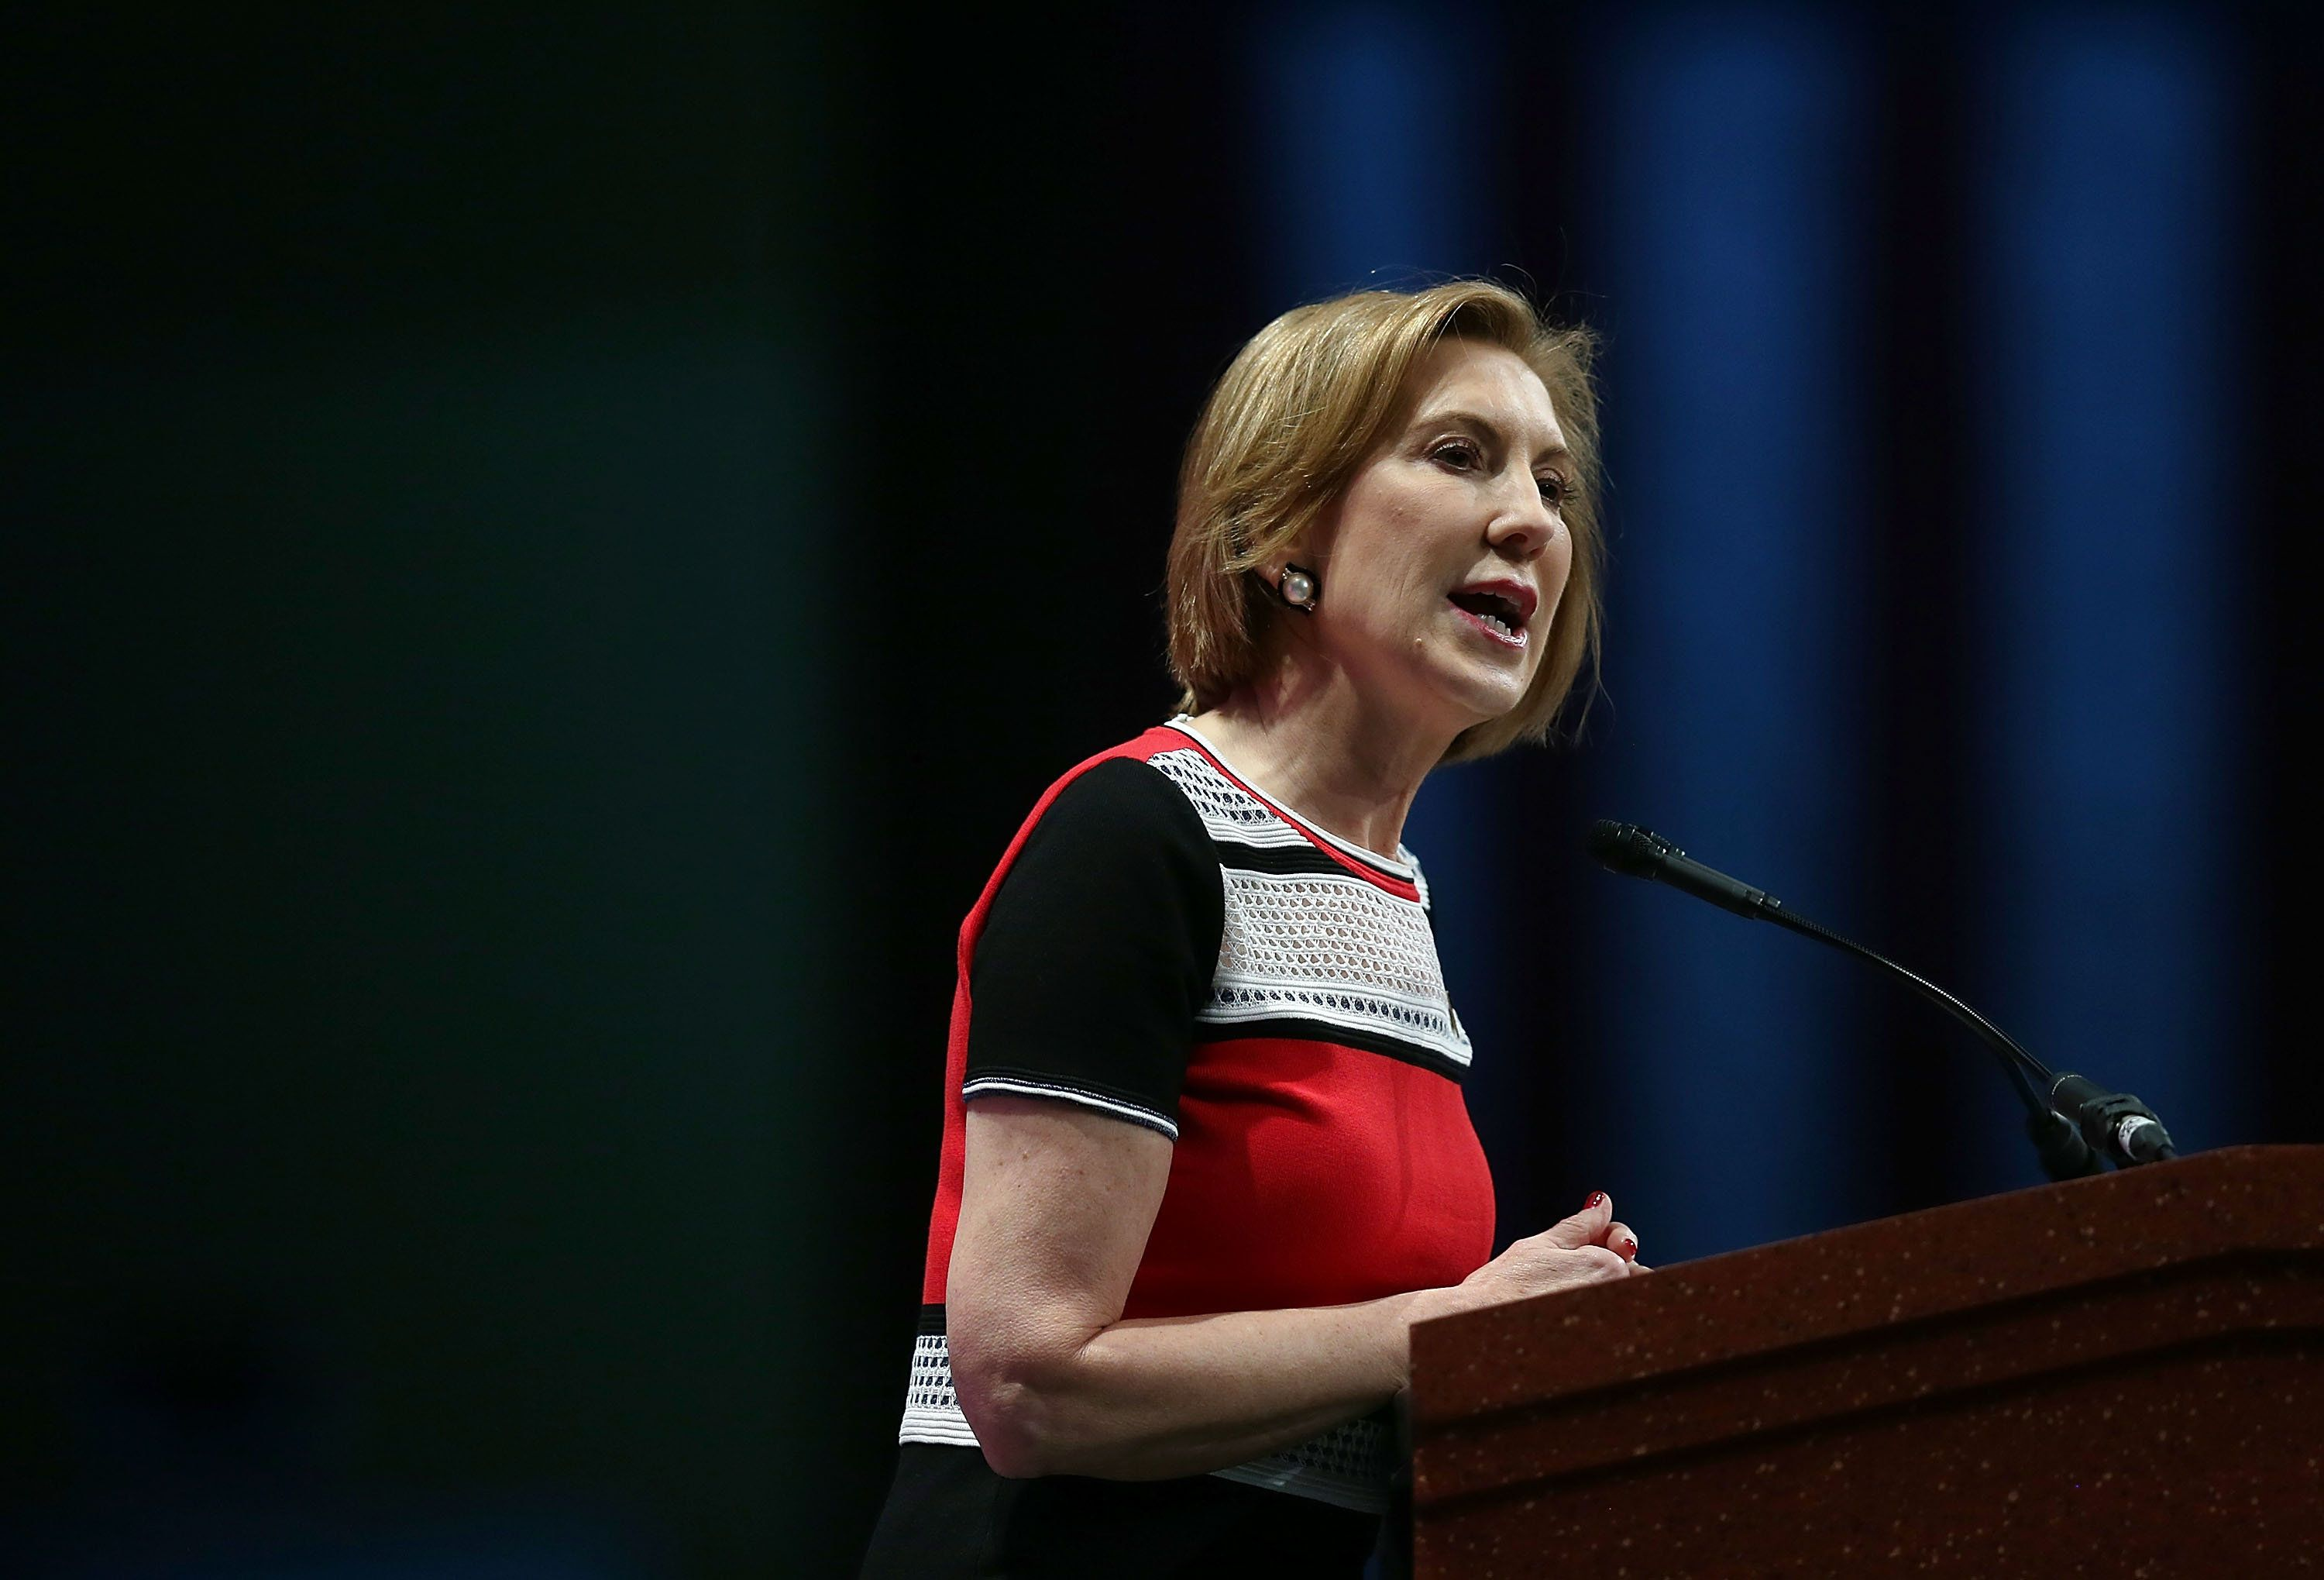 ORLANDO, FL - NOVEMBER 14:  Republican presidential candidate Carly Fiorina speaks during the Sunshine Summit conference being held at the Rosen Shingle Creek on November 14, 2015 in Orlando, Florida.  The summit brought Republican presidential candidates in front of the Republican voters.  (Photo by Joe Raedle/Getty Images)